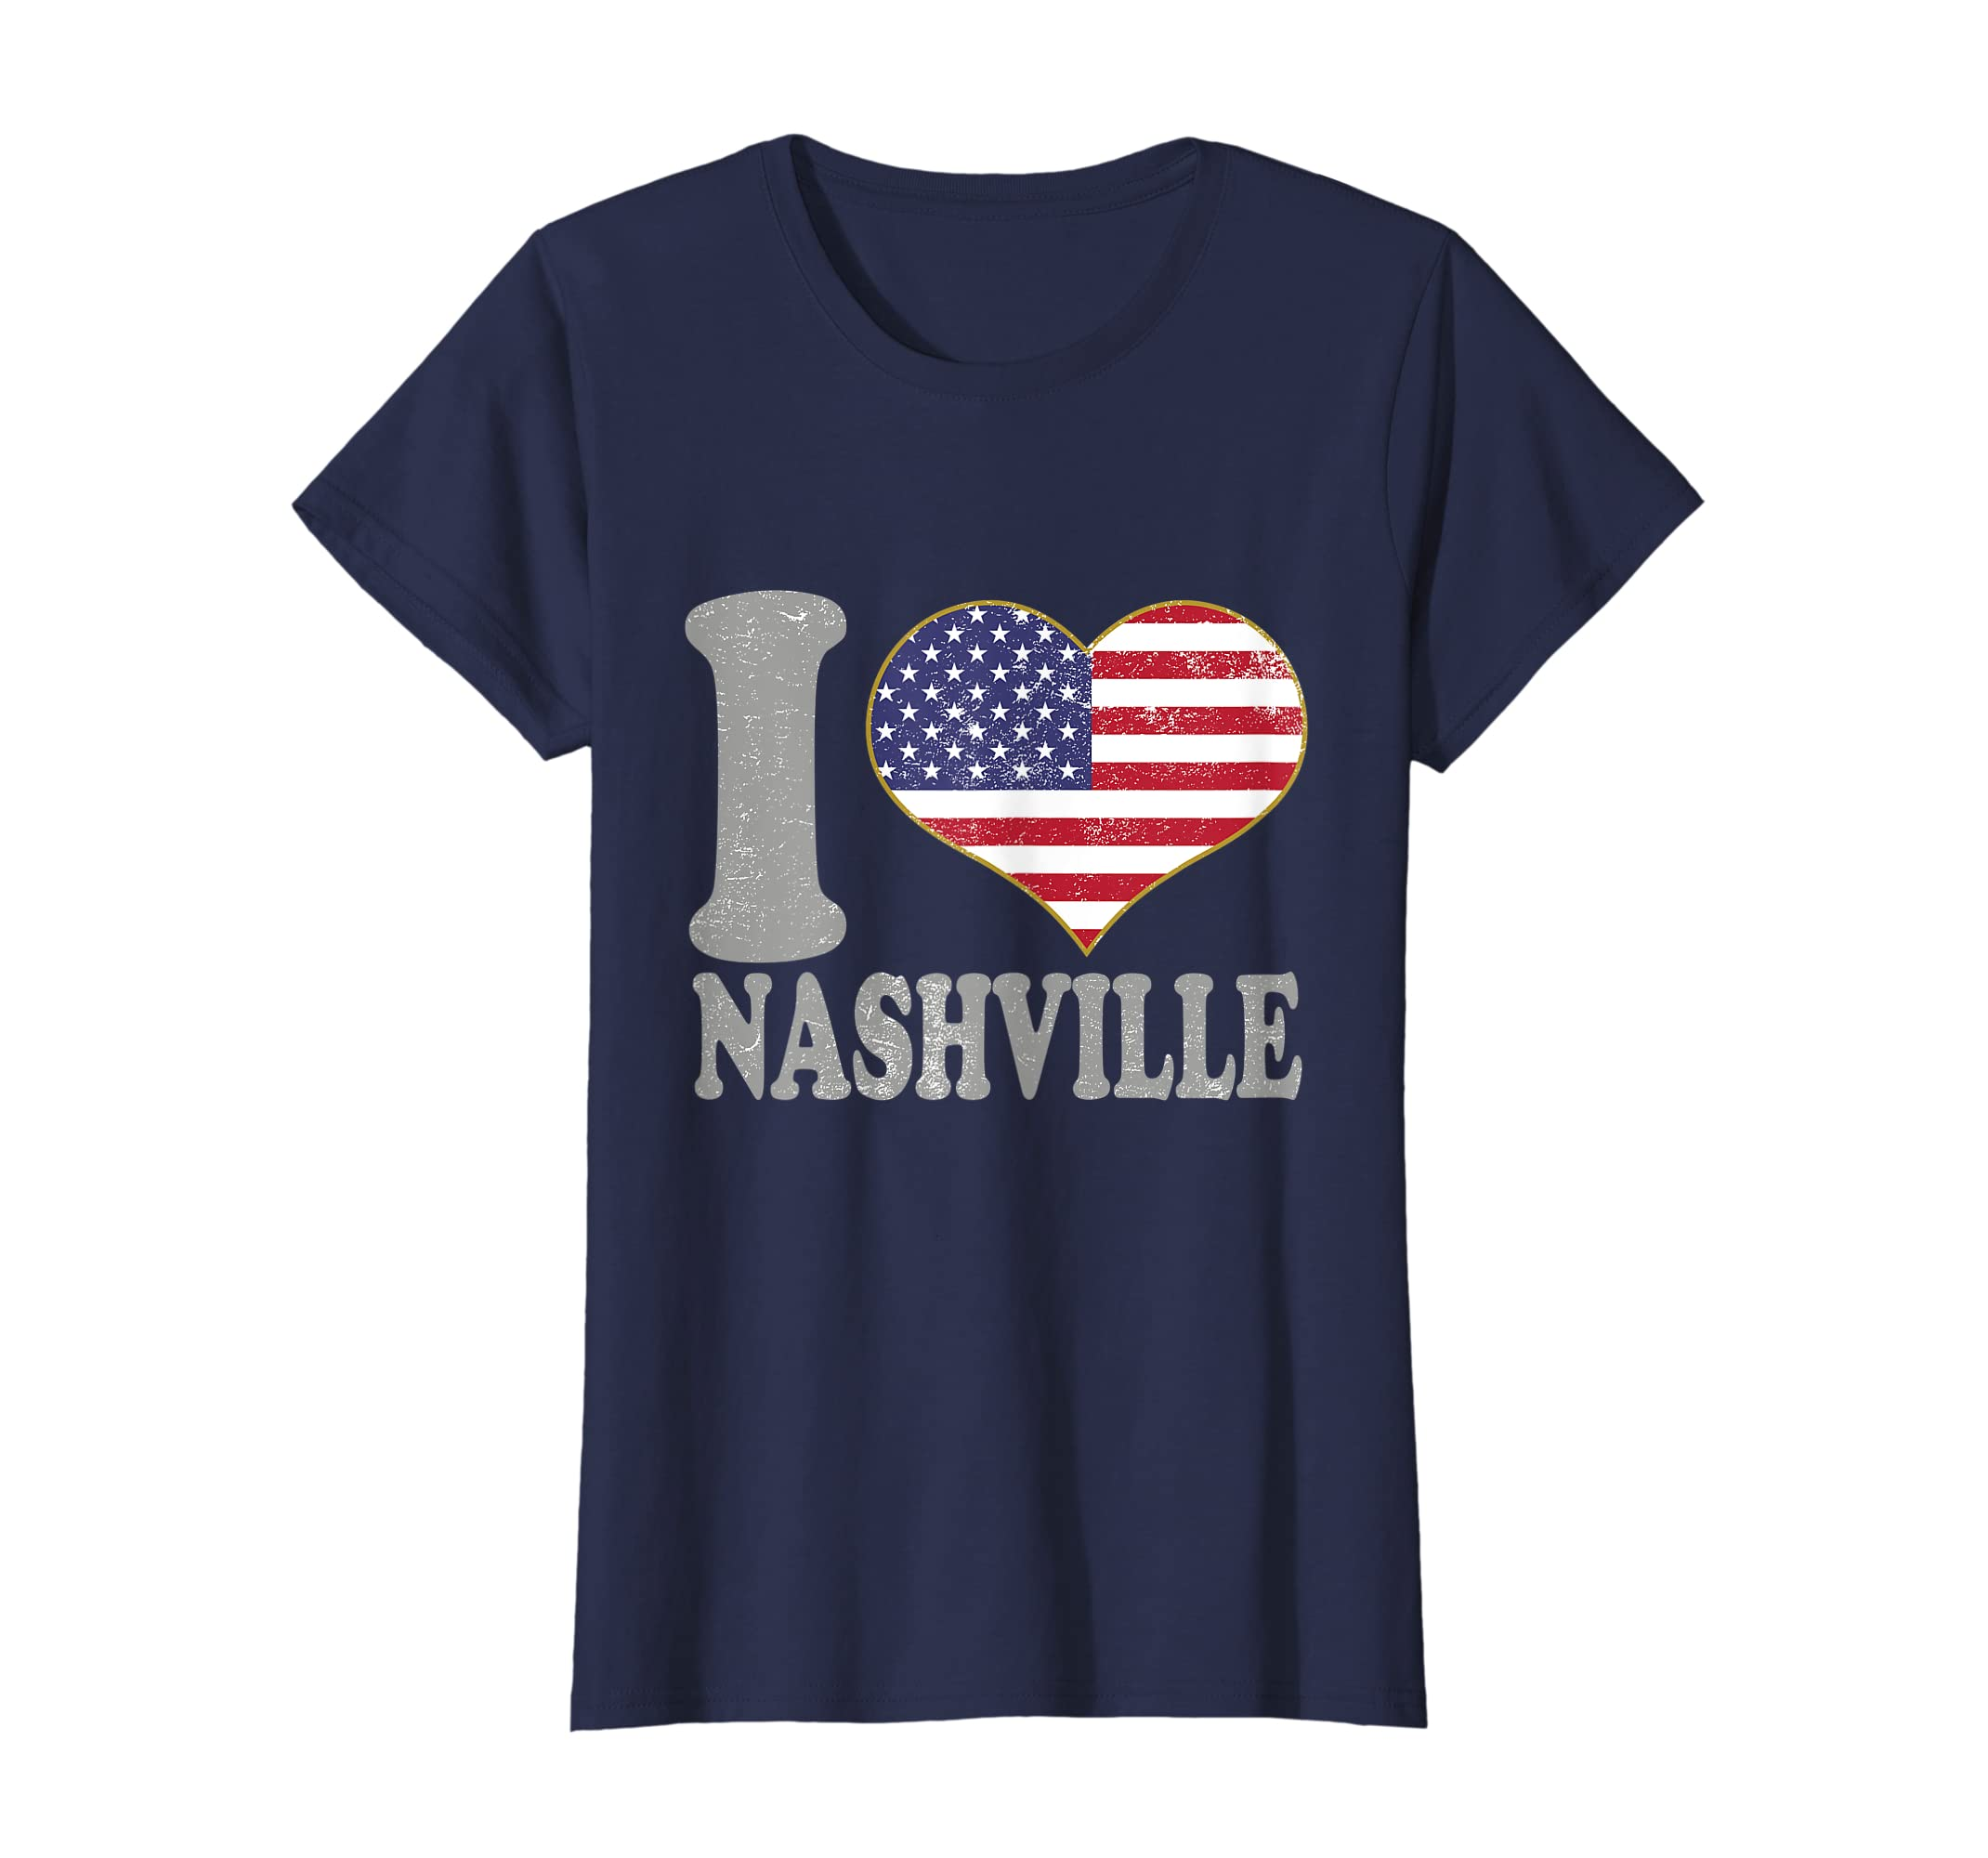 7edc89d7 Amazon.com: Nashville T Shirt Clothes Adult Teen Kids Apparel ...